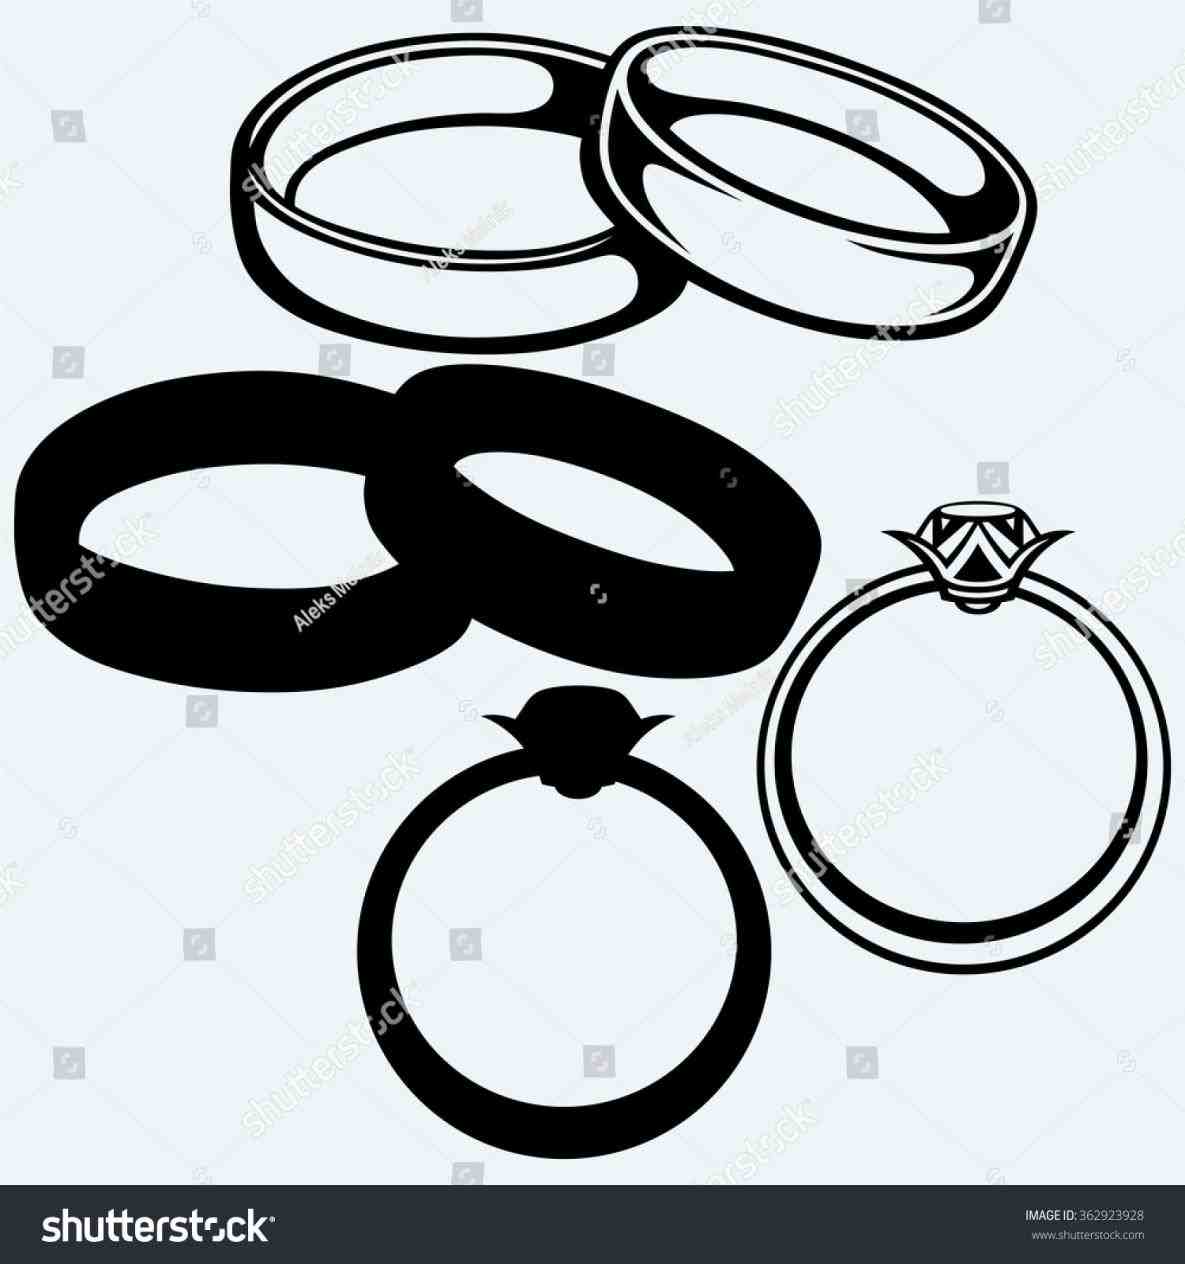 1185x1264 Icon Isolated Blue Stock Vector Rings Wedding Bells Silhouette